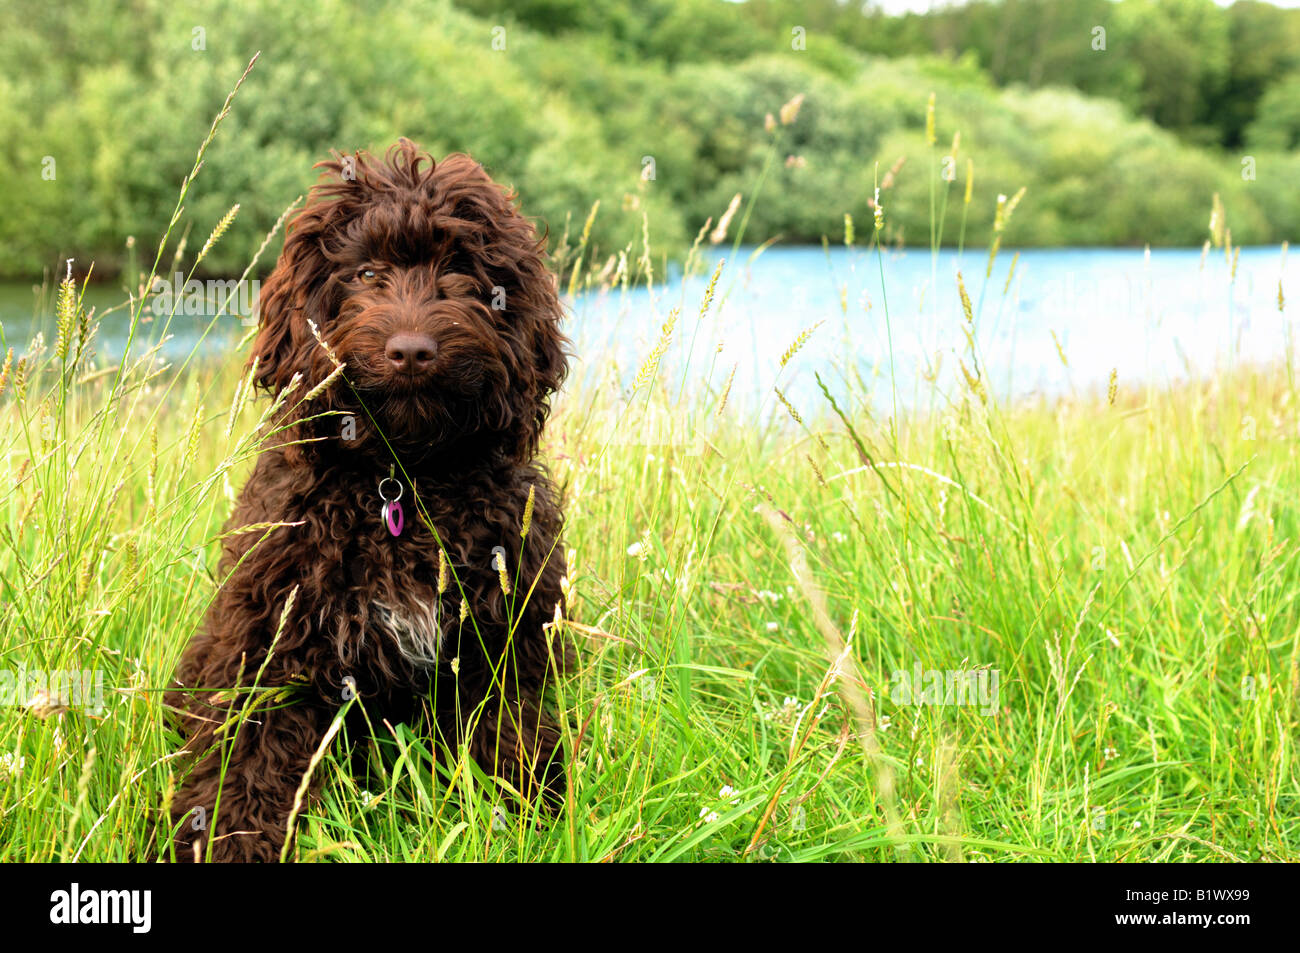 chocolate cockapoo puppy sat in long grass by lake - Stock Image